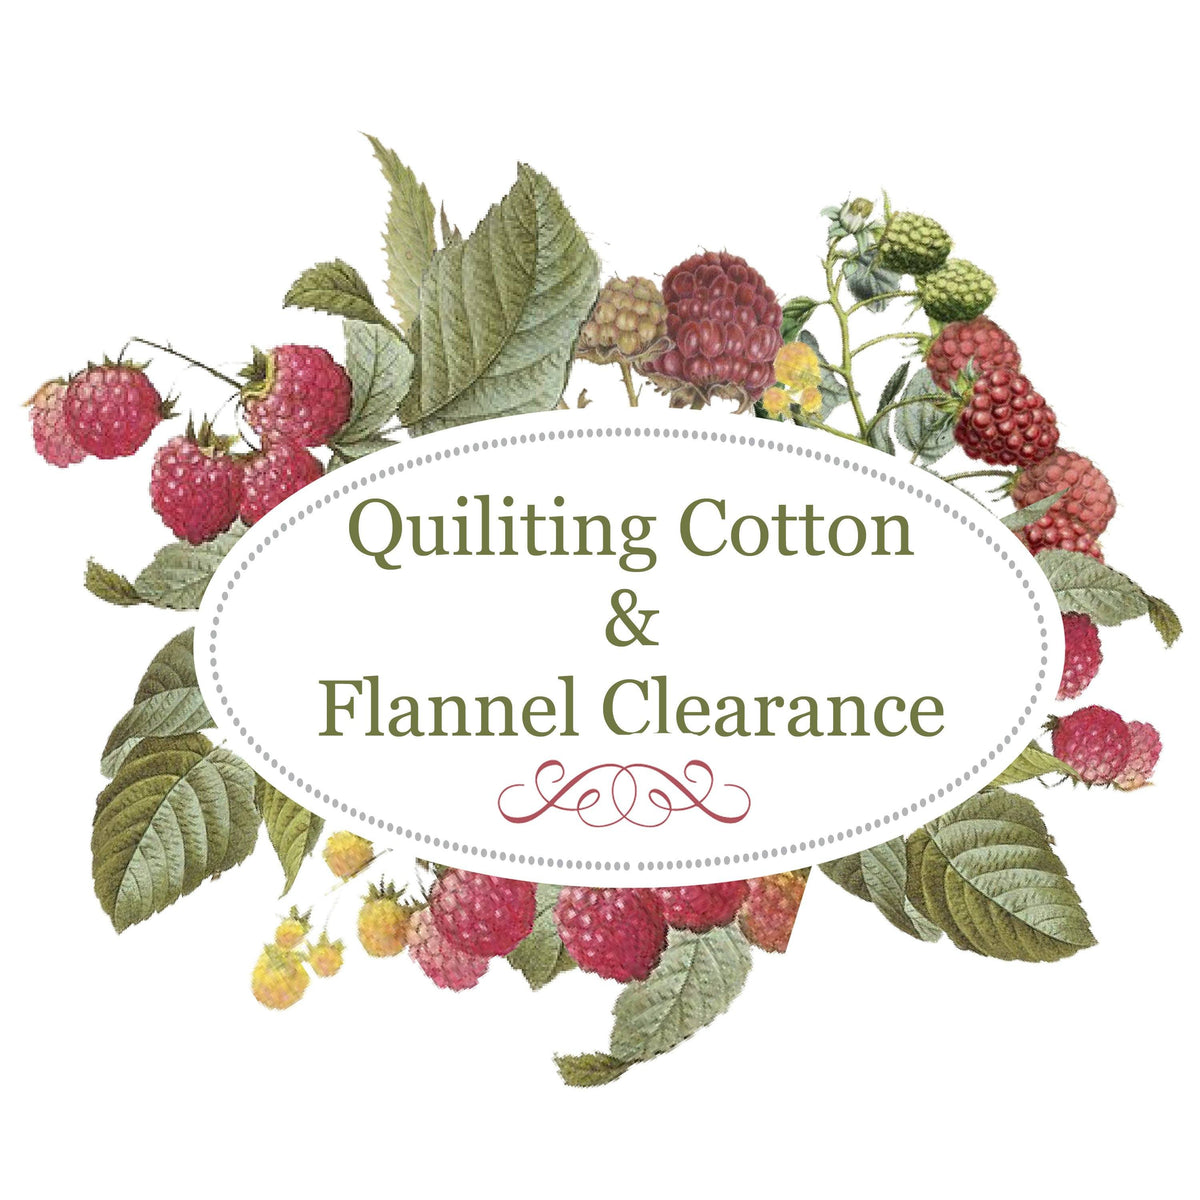 Woven Cotton And Flannel Clearance